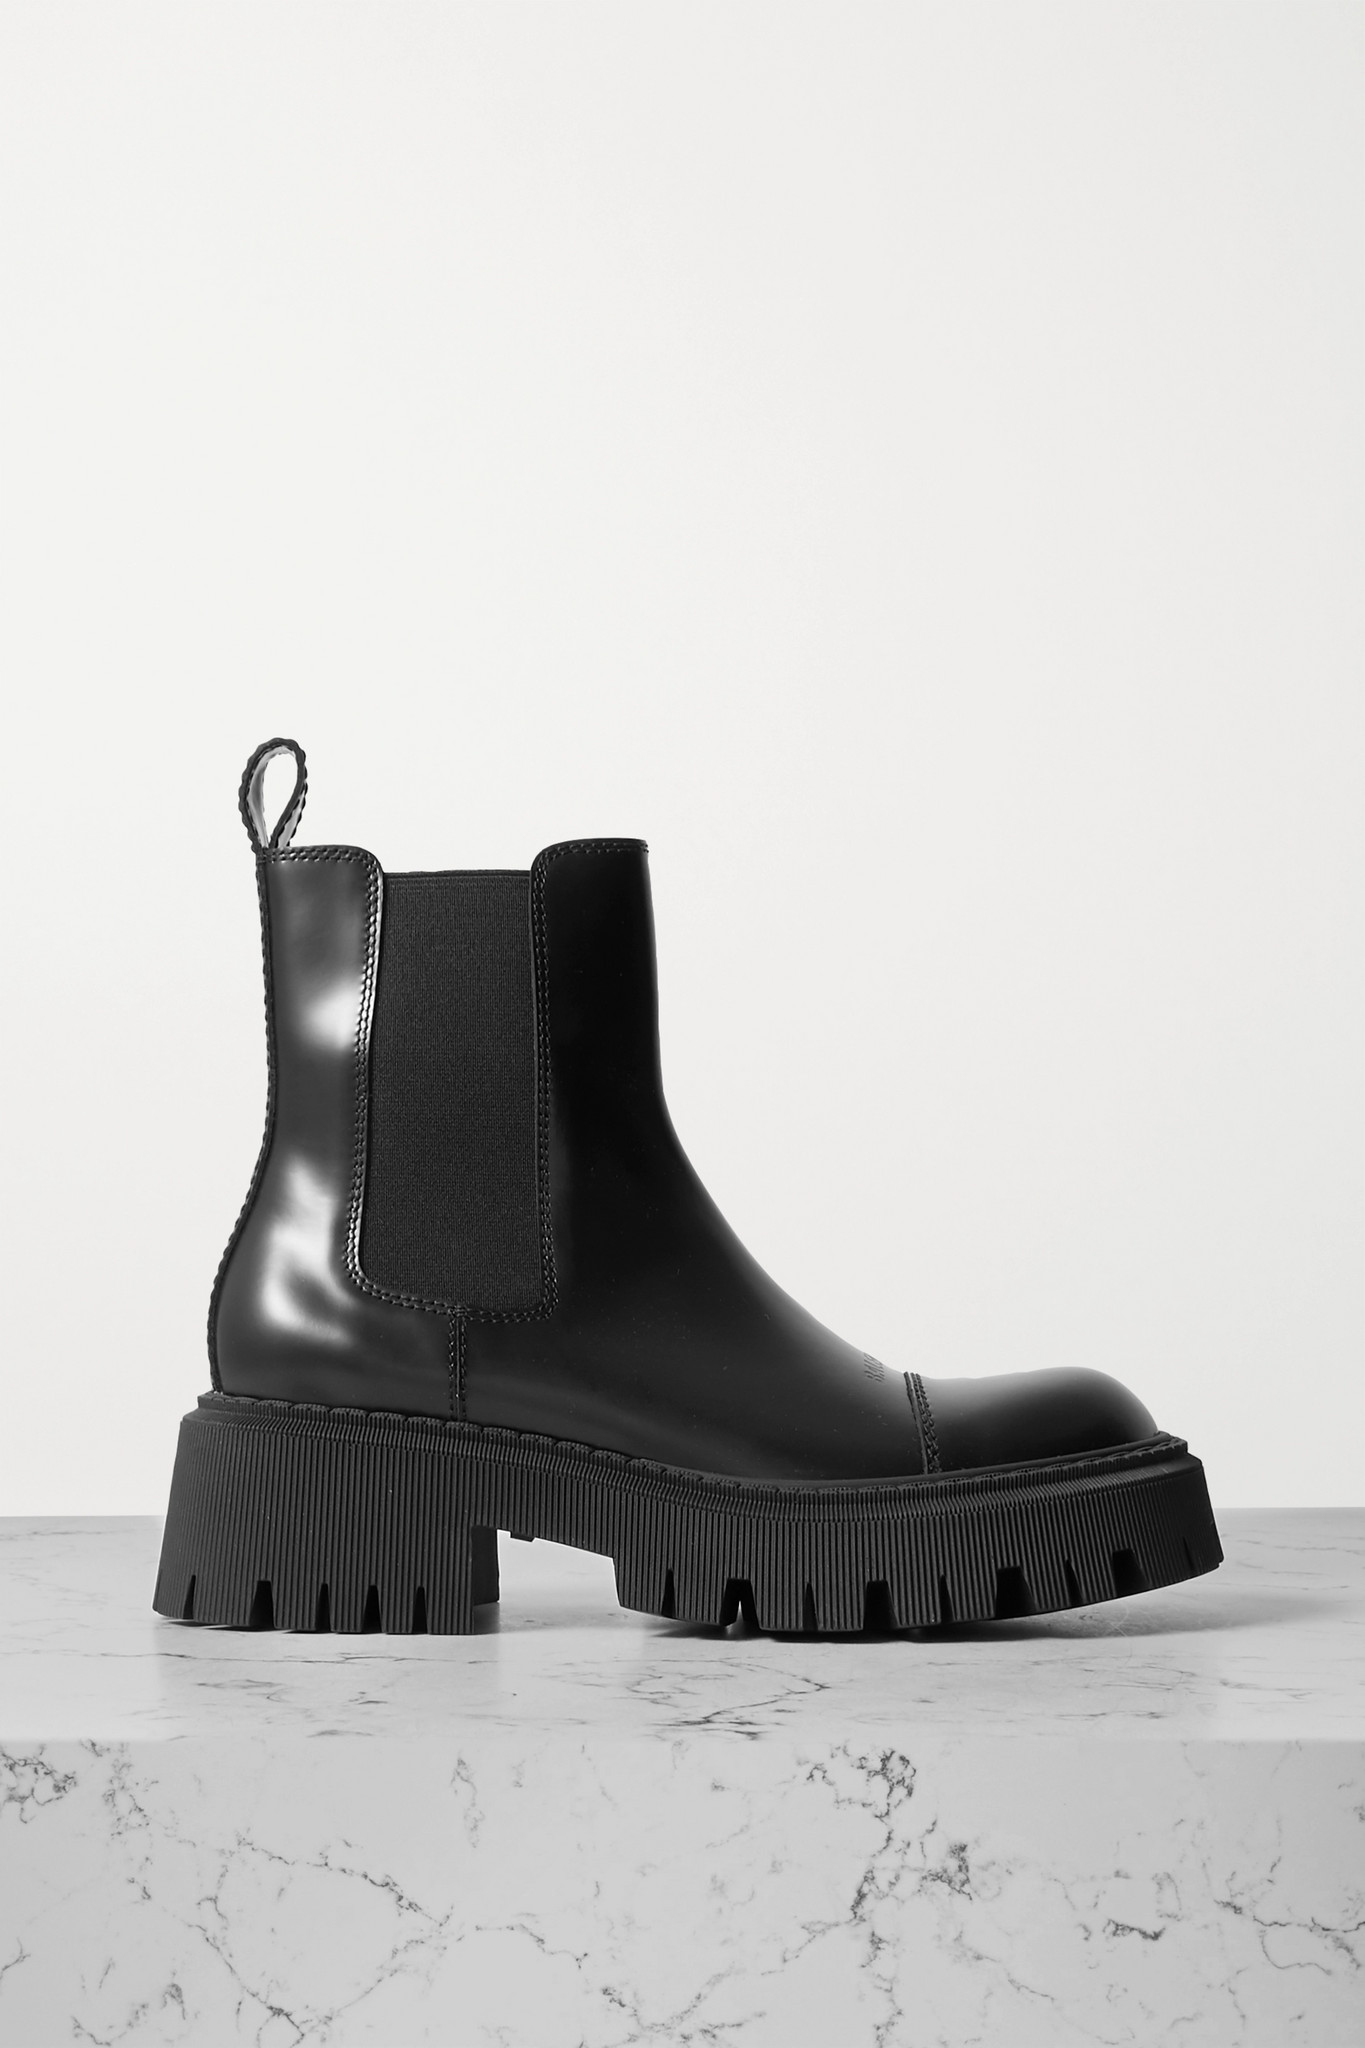 BALENCIAGA - Tractor Leather Ankle Boots - Black - IT37